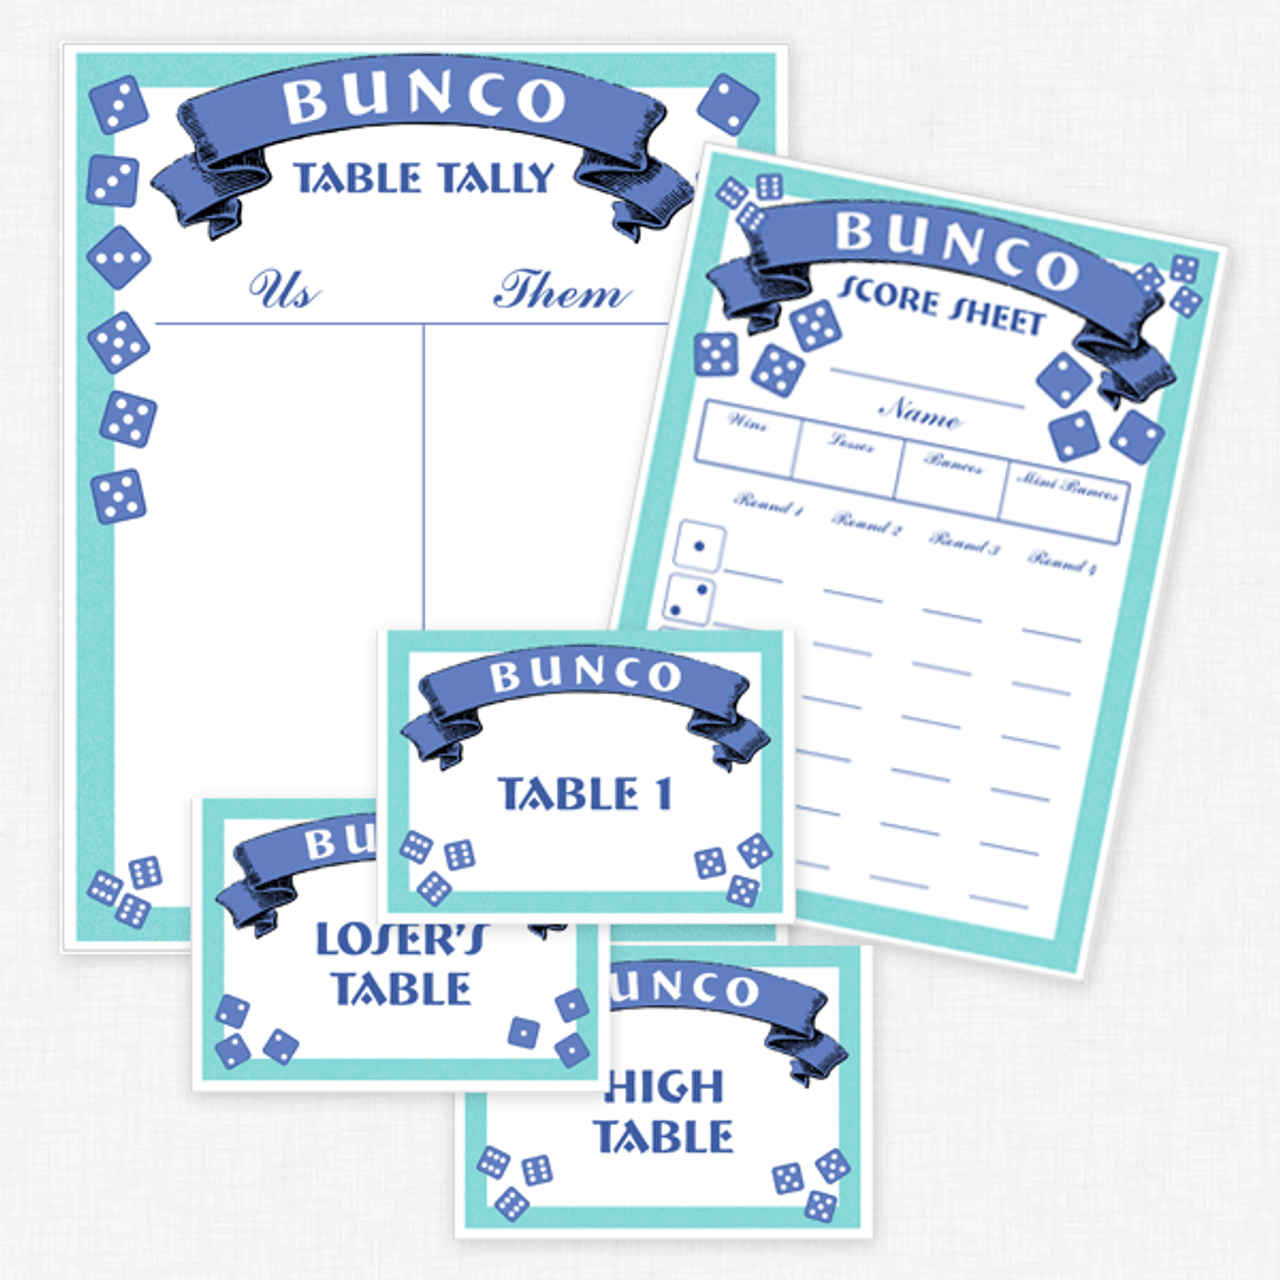 photo regarding Printable Bunco Table Tally Sheets identify Printable Bunco Mounted - Rating Playing cards, Tallies, Markers